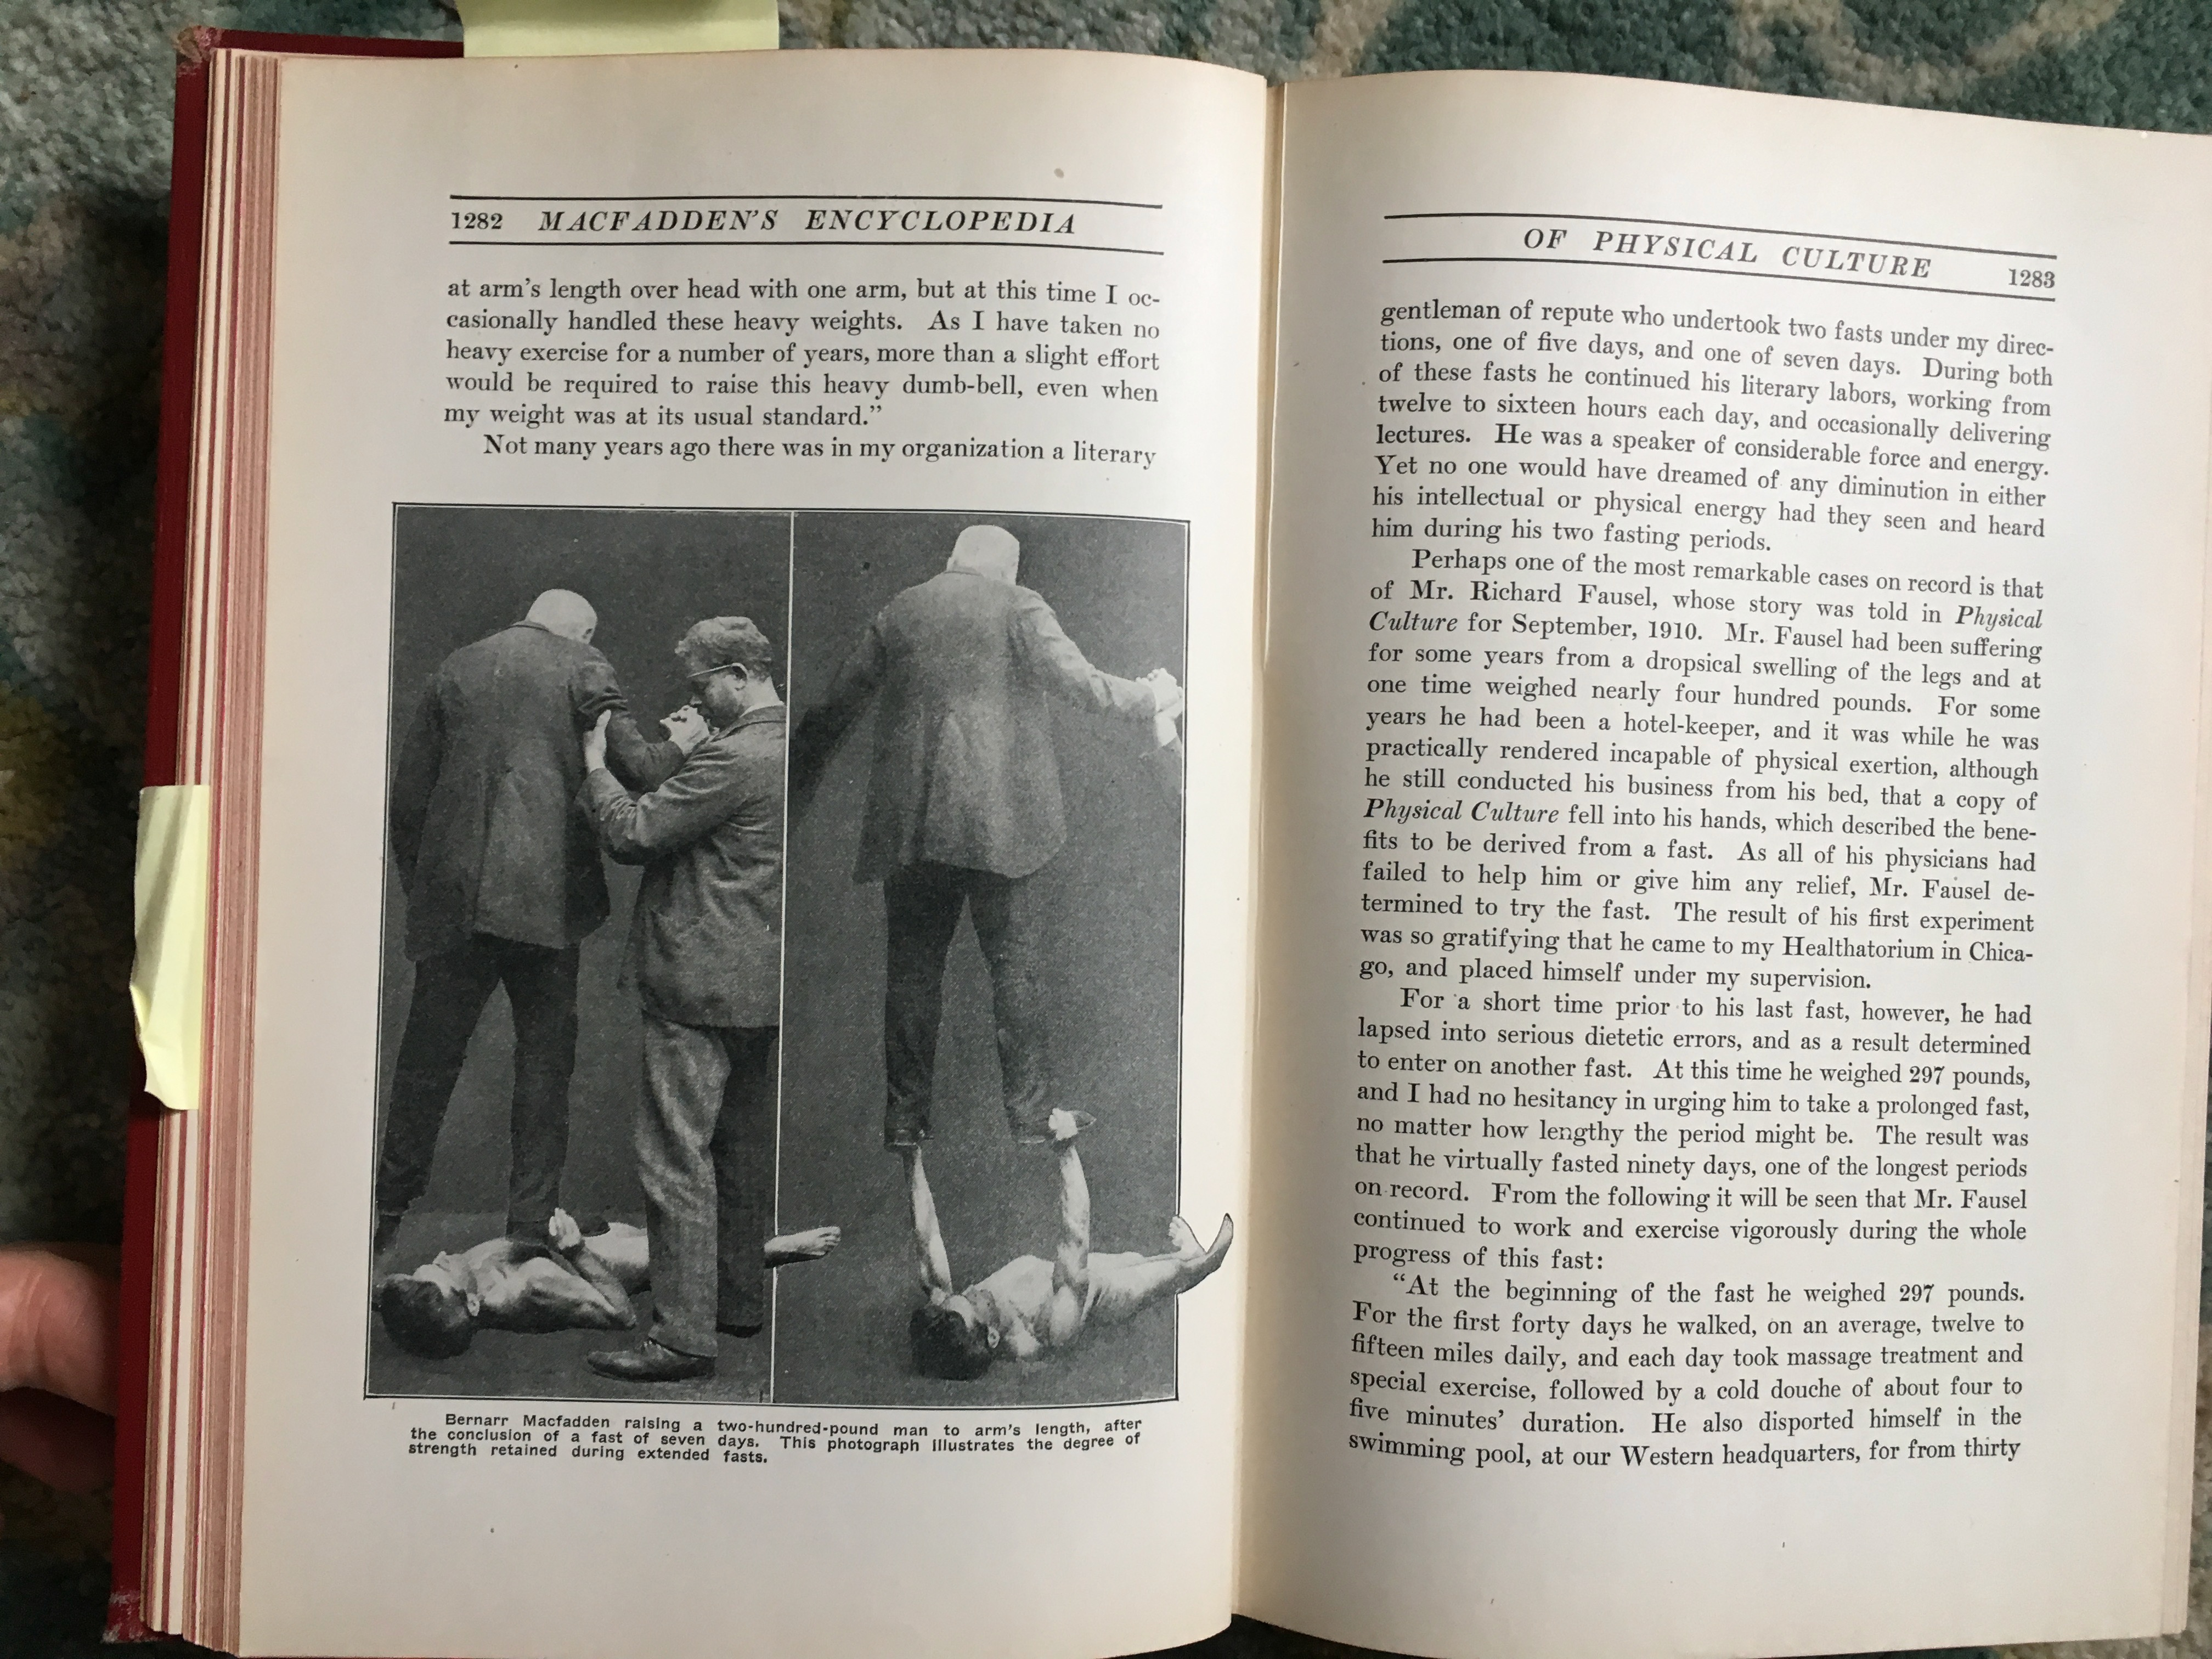 From the 1920 edition, in which MacFadden lifts a large man after fasting for a week.